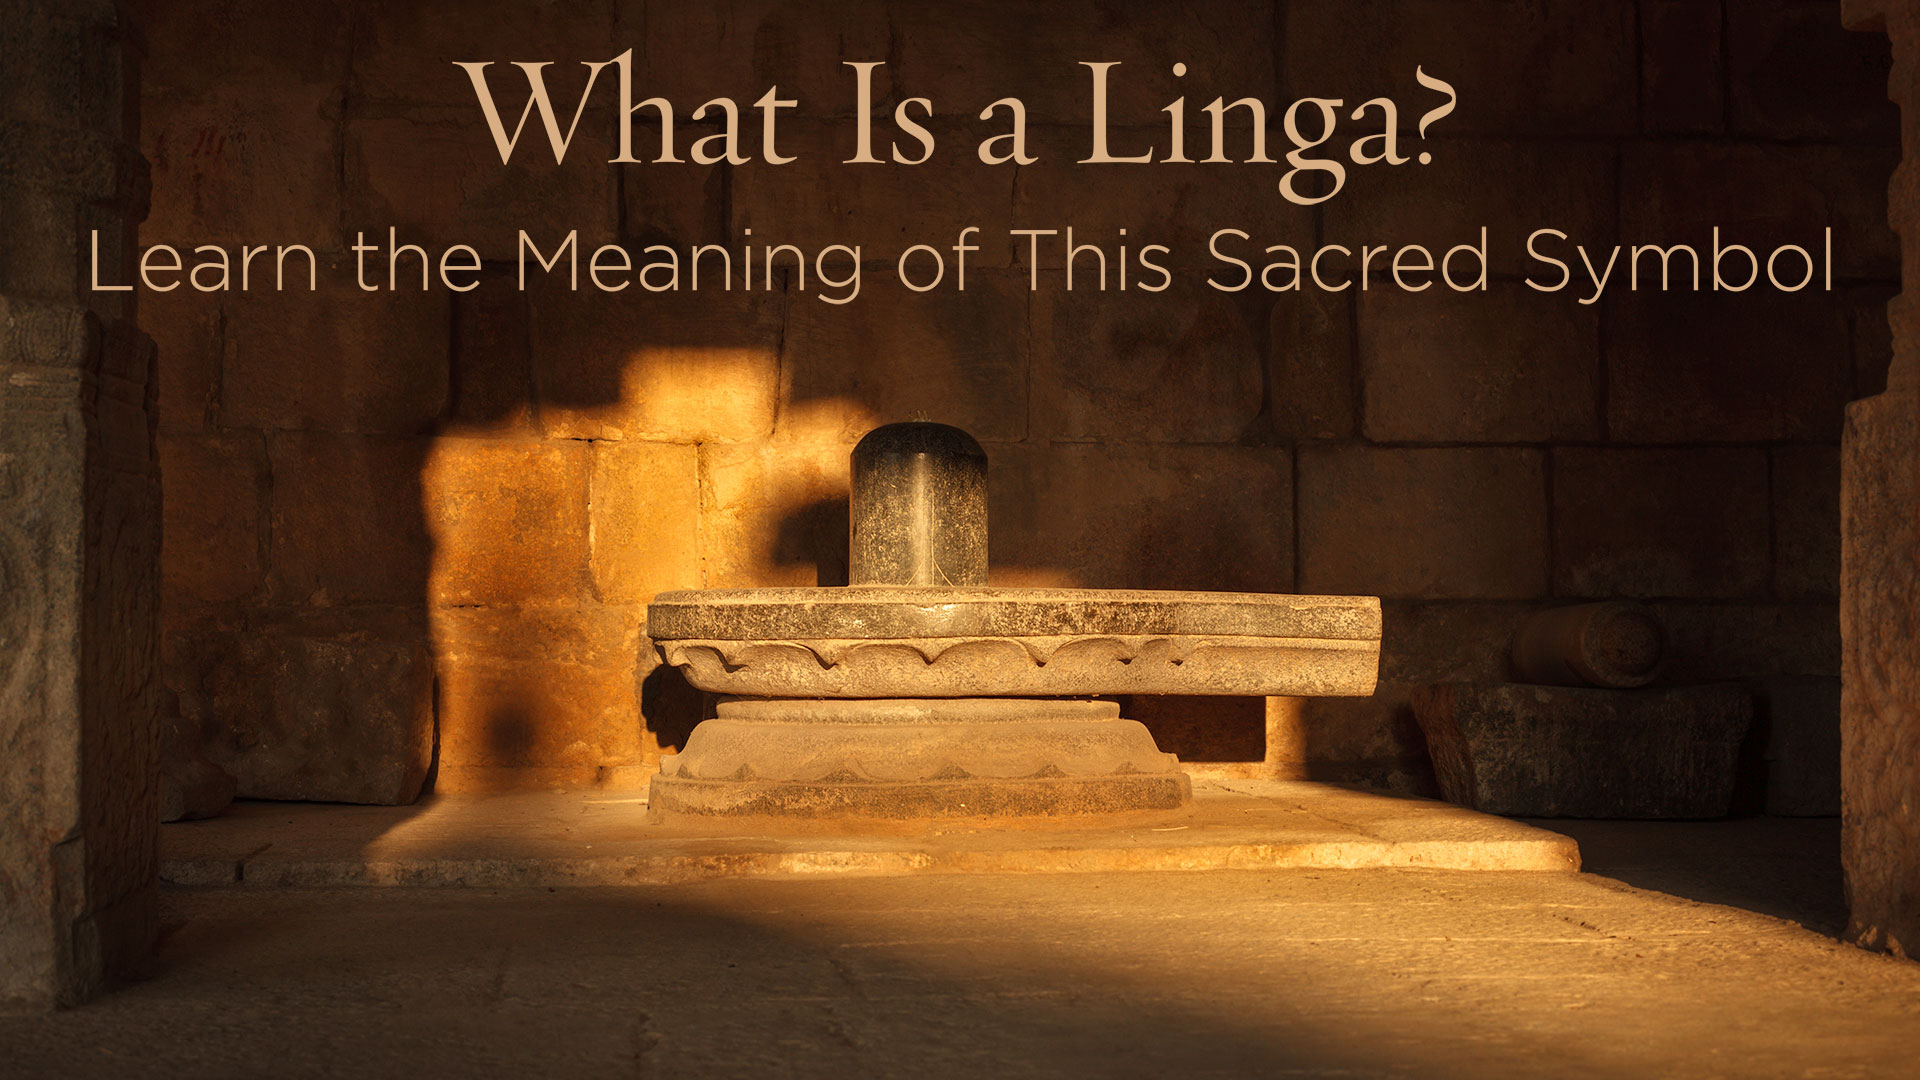 What is a linga learn the meaning of this sacred symbol learn the meaning of this sacred symbol buycottarizona Image collections